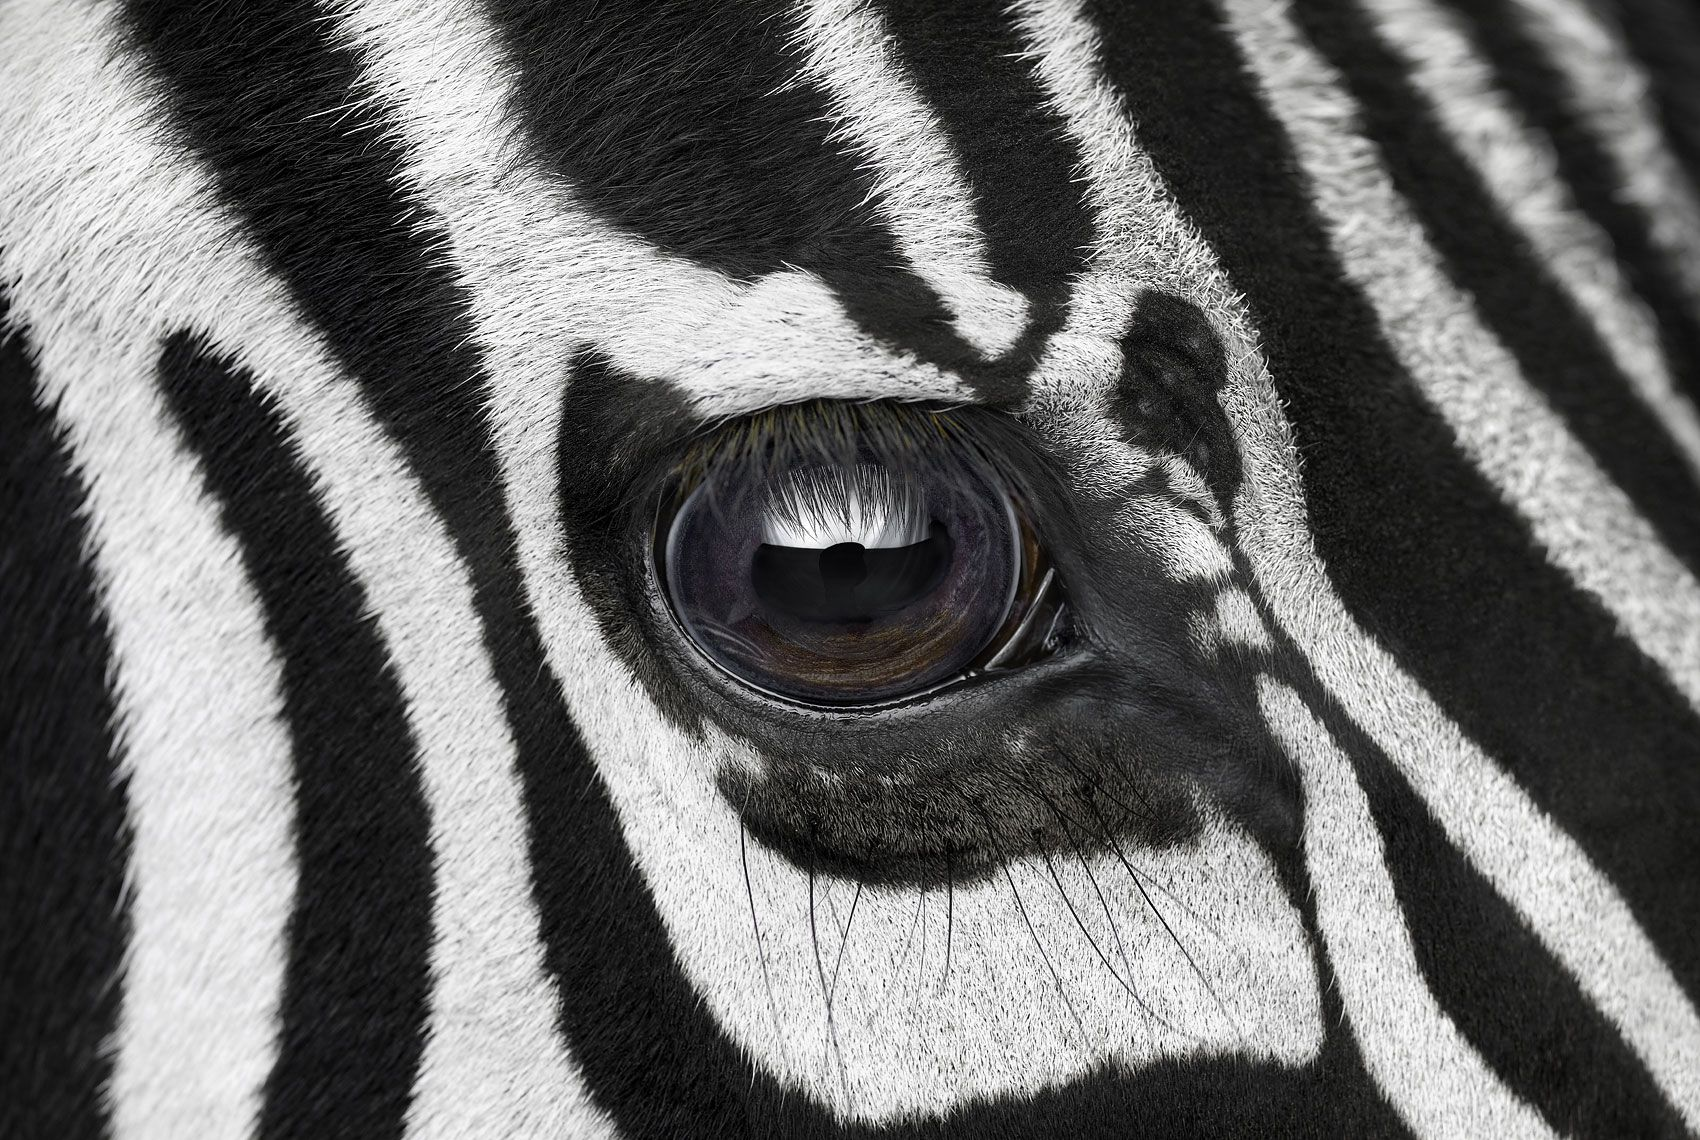 Zebra #7, Los Angeles, CA, 2016